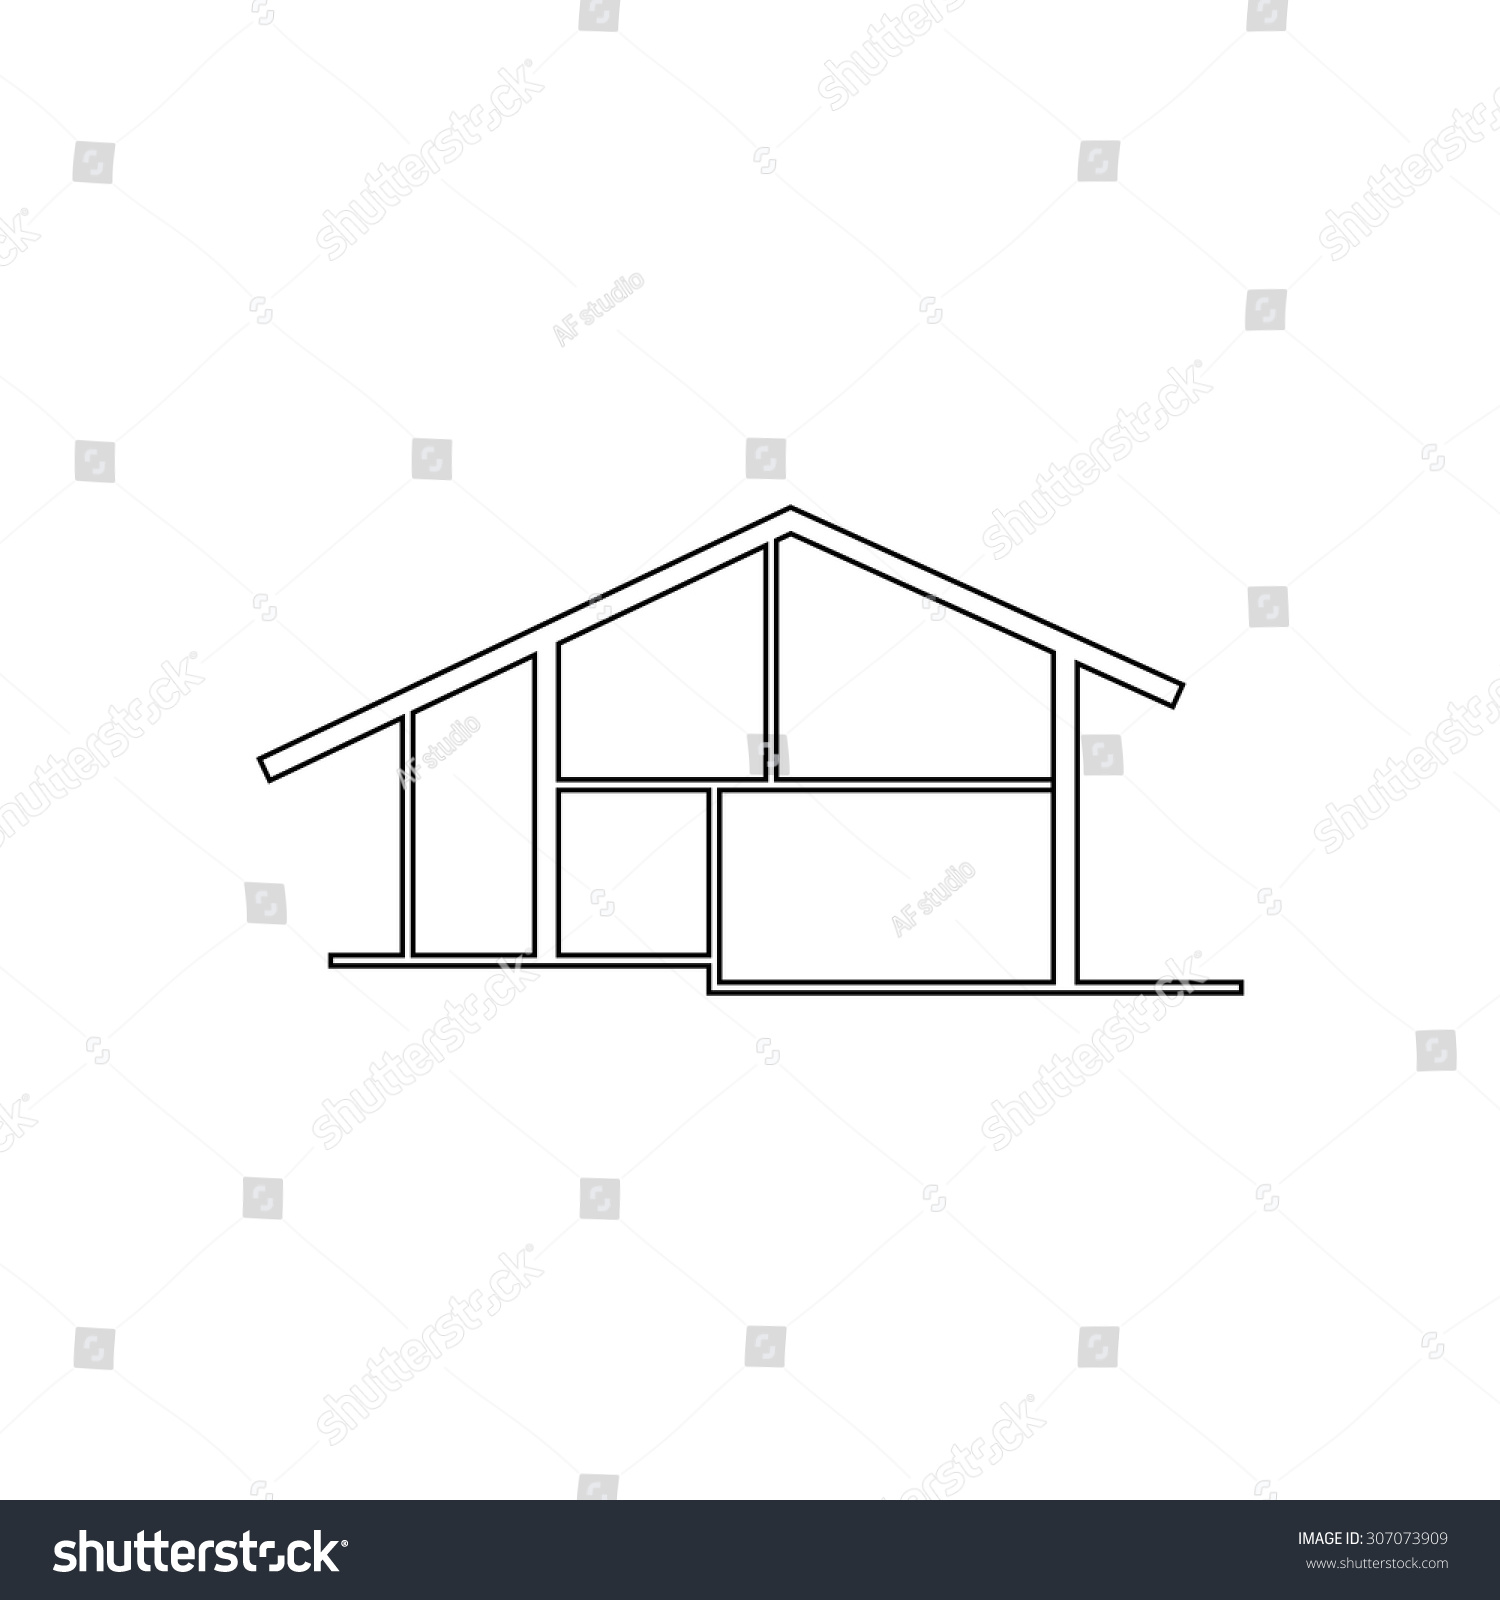 House outline picture - Modern House Outline Black Simple Vector Pictogram